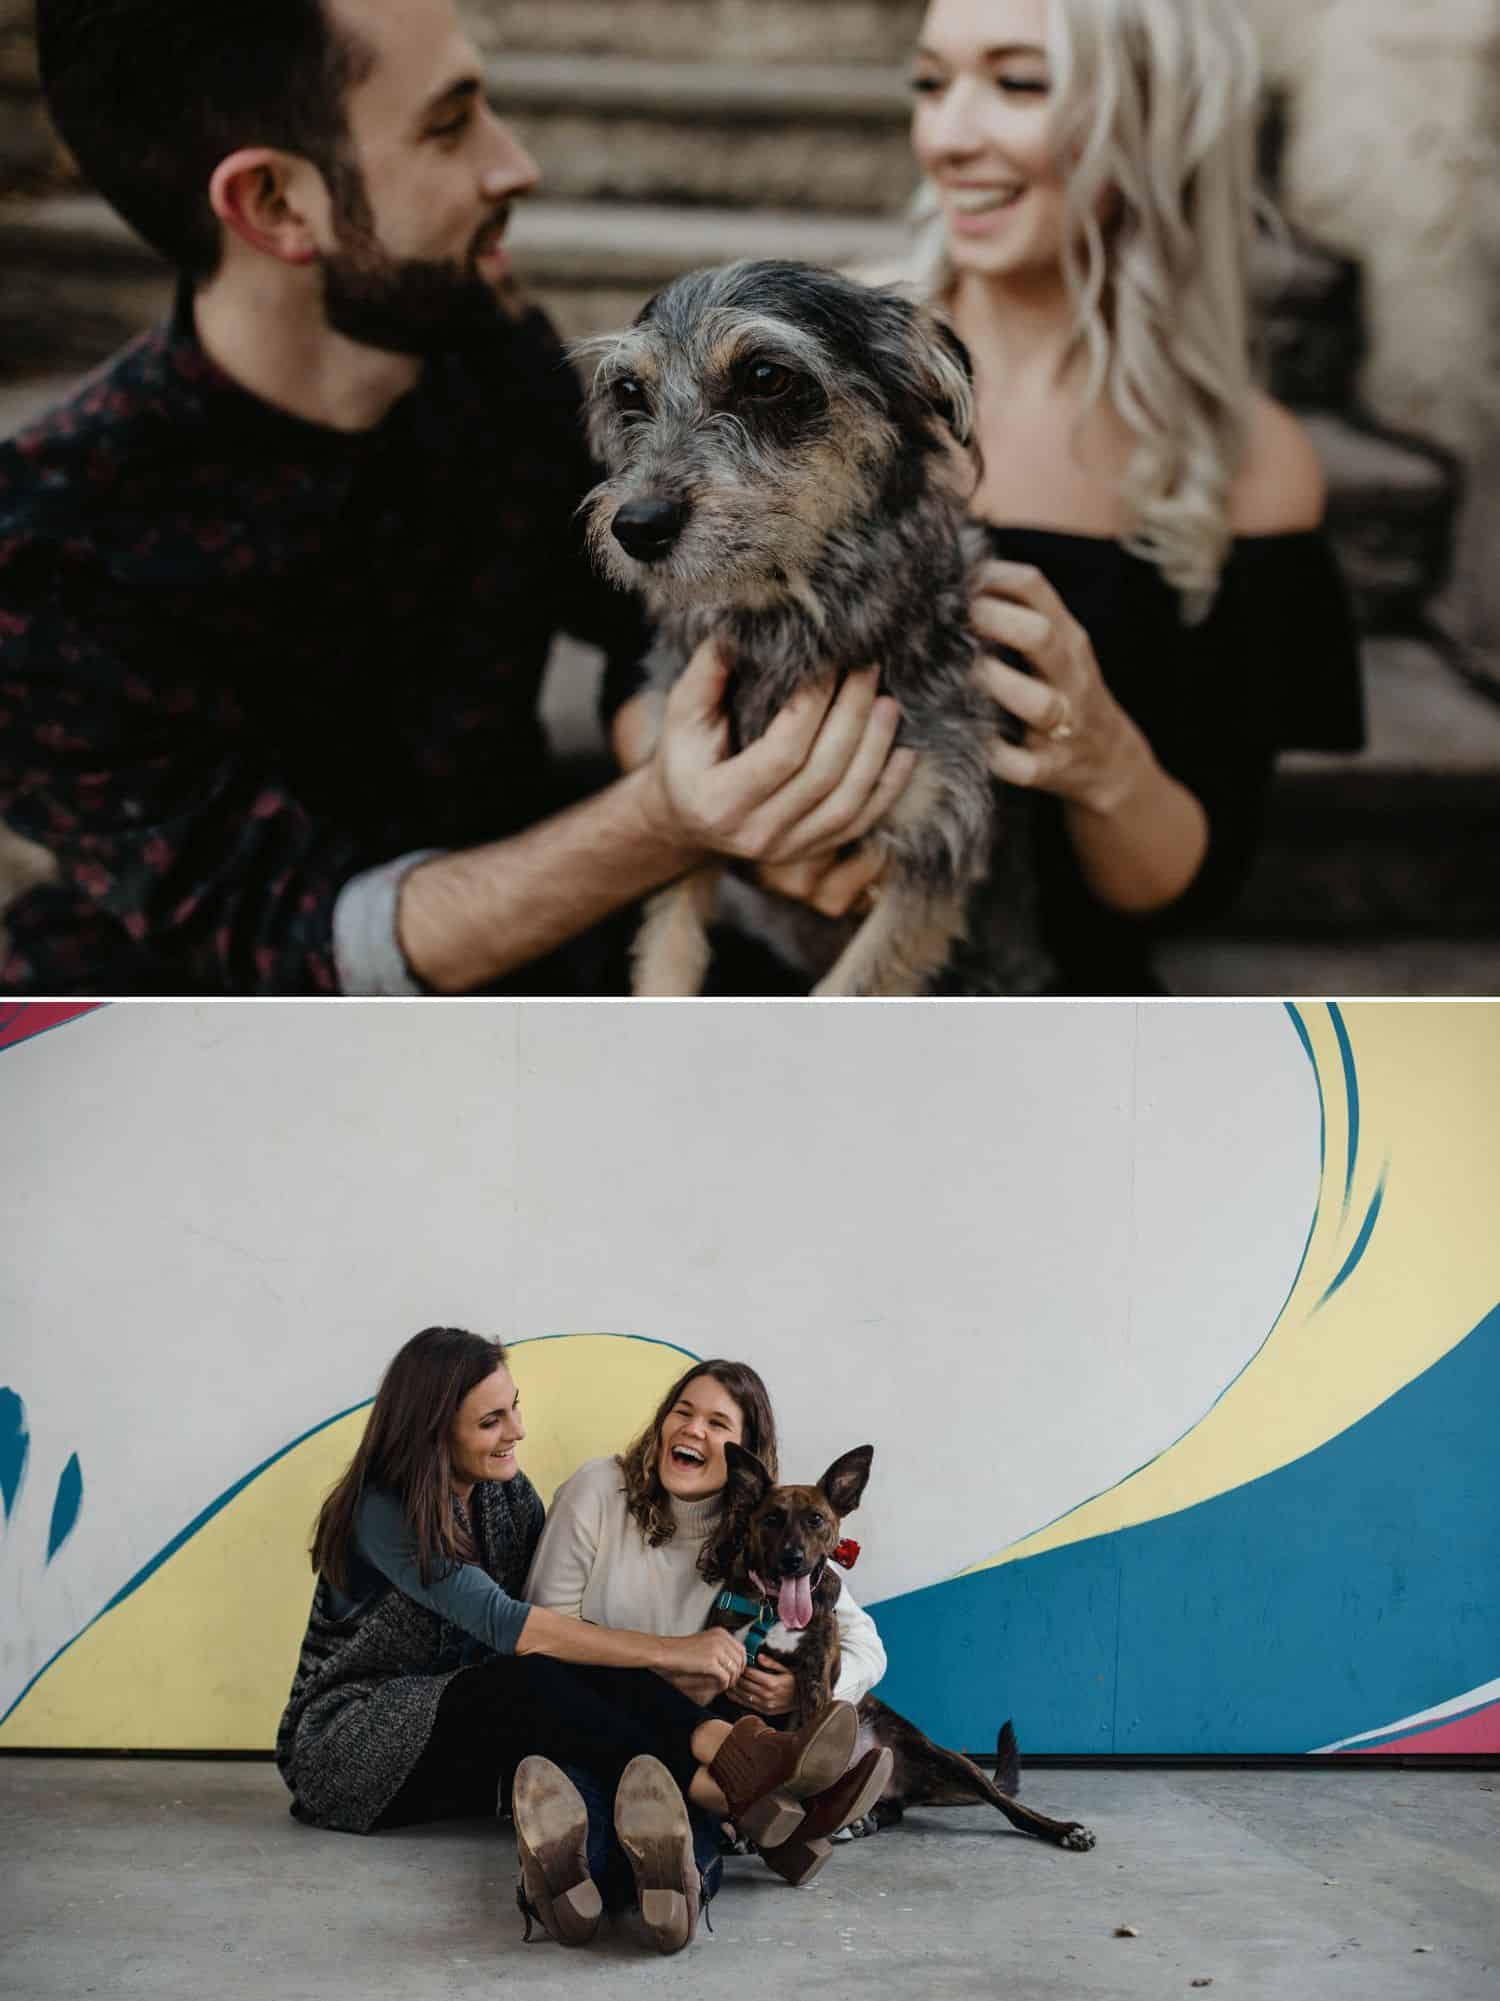 Include precious pups and cute kitties in your next engagement photo session